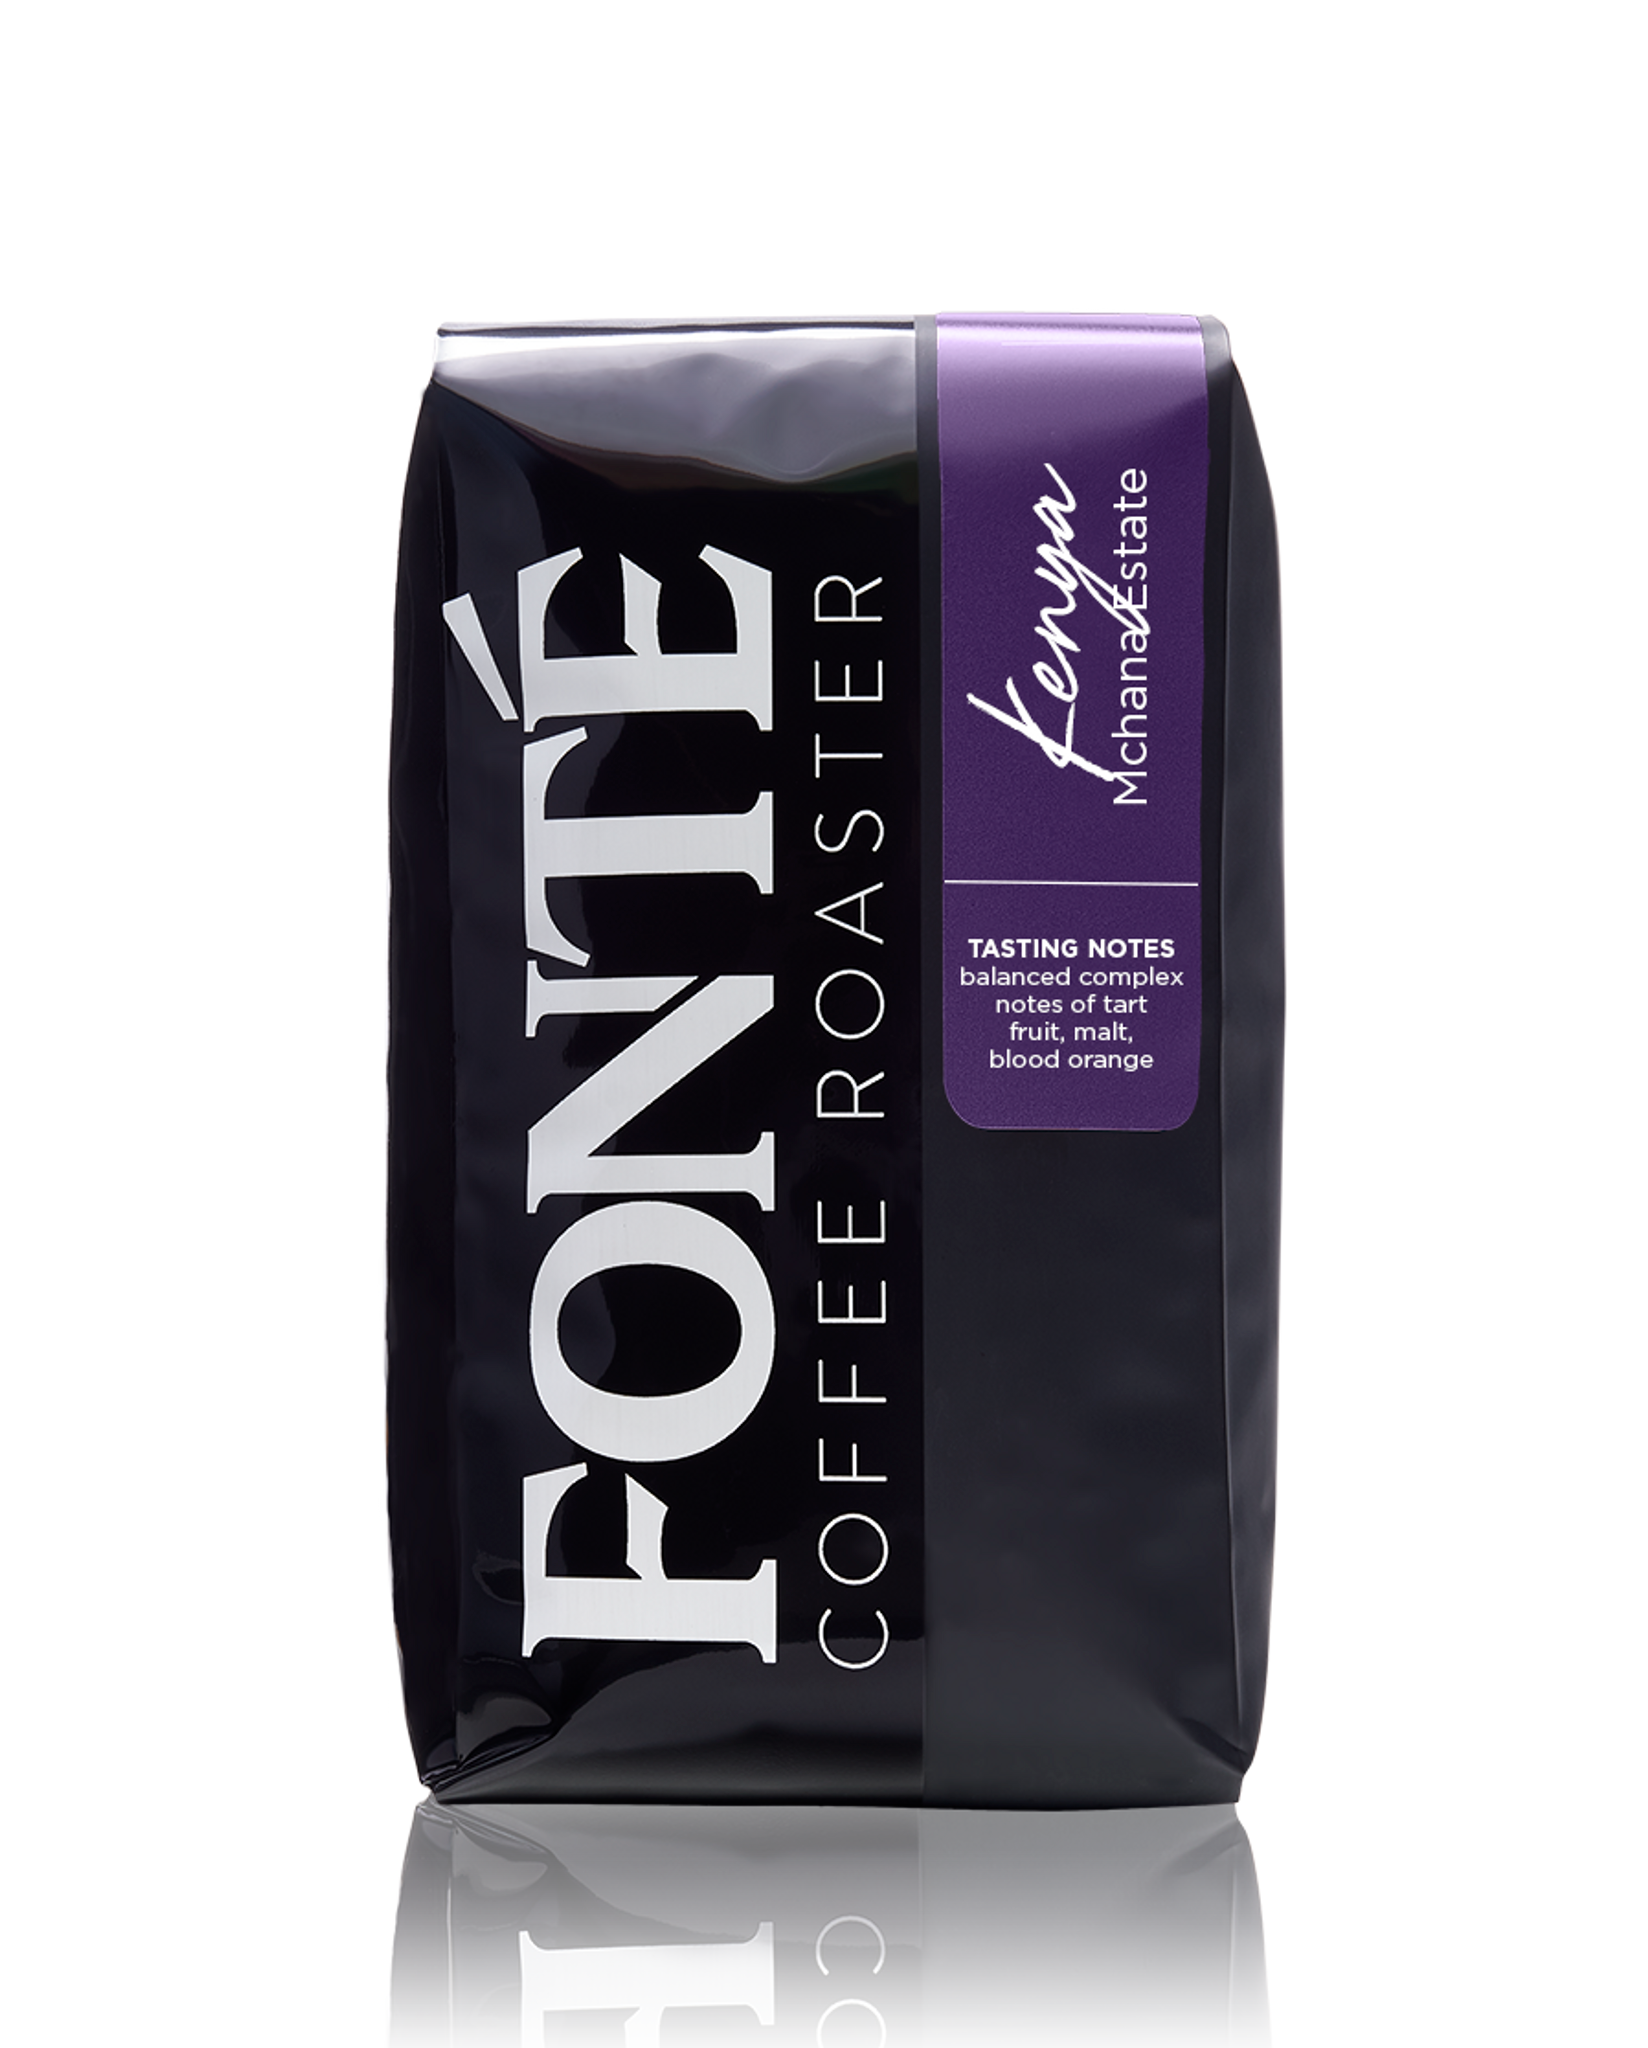 Buy Fonte Kenya Mchana Estate Special Selection Available as Whole Bean, French Press, Drip, Melitta, Home Espresso, Commercial Espresso, and Turkish Coffee